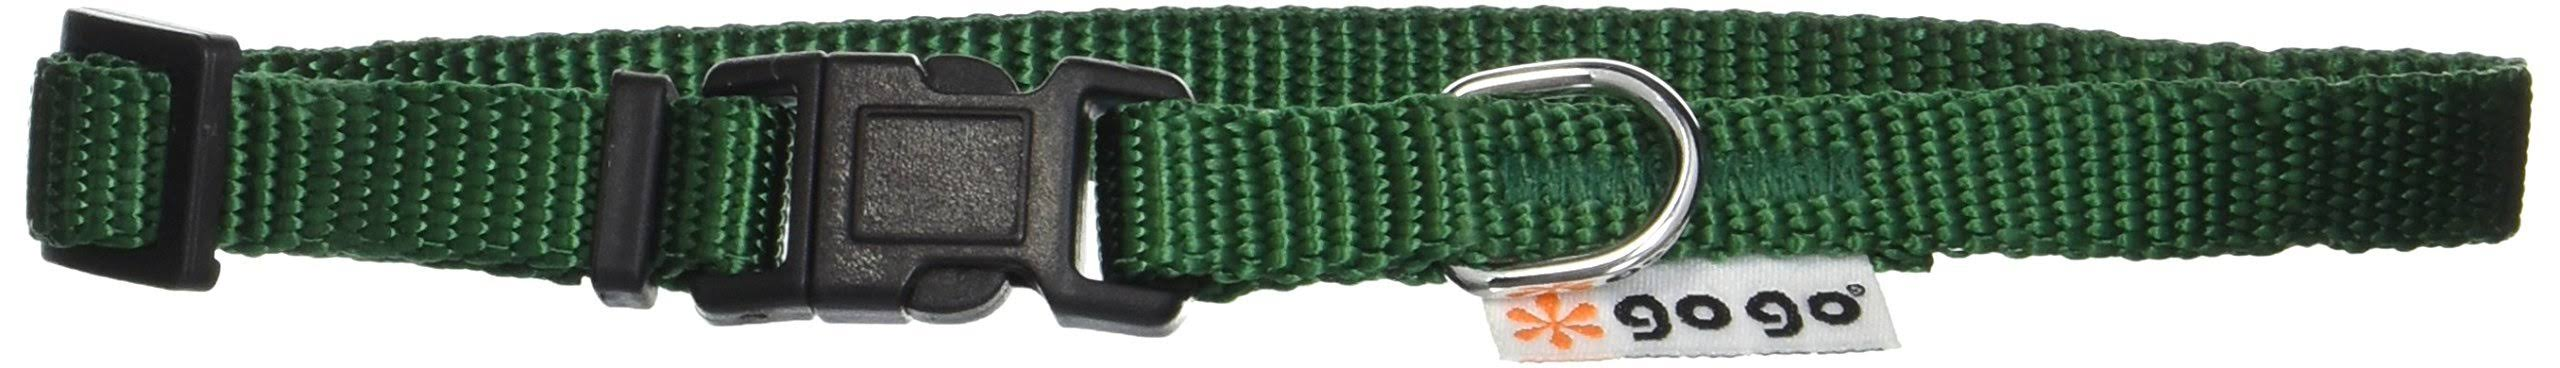 "GoGo Pet Products Comfy Nylon Adjustable Pet Dog Collar - X-Small, Hunter Green, 3/8"" x 8-12"""